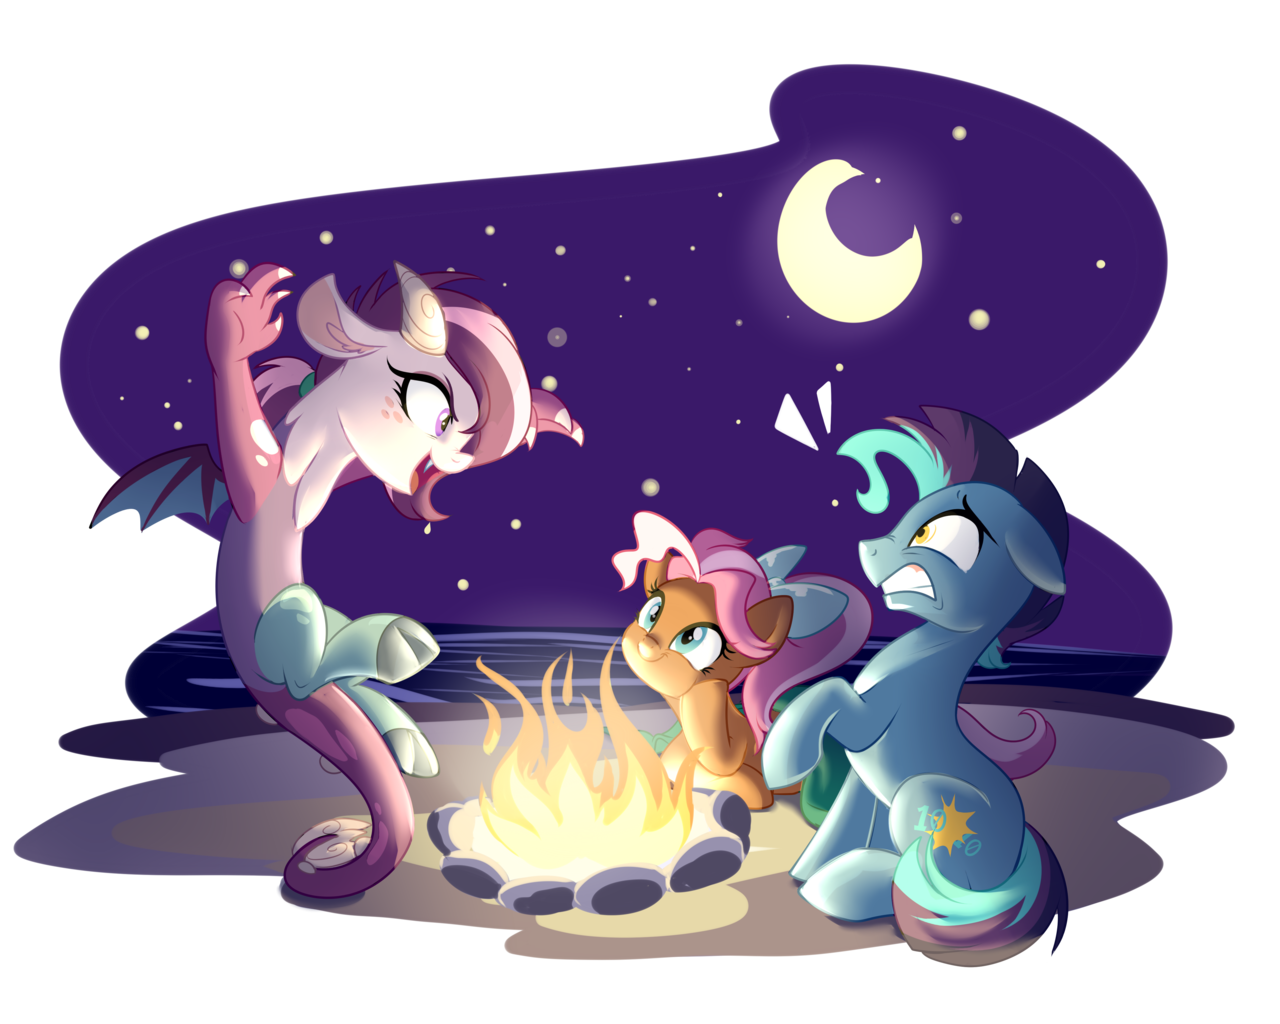 Changing To Night  clipart campfire Filter this 1323694 image or